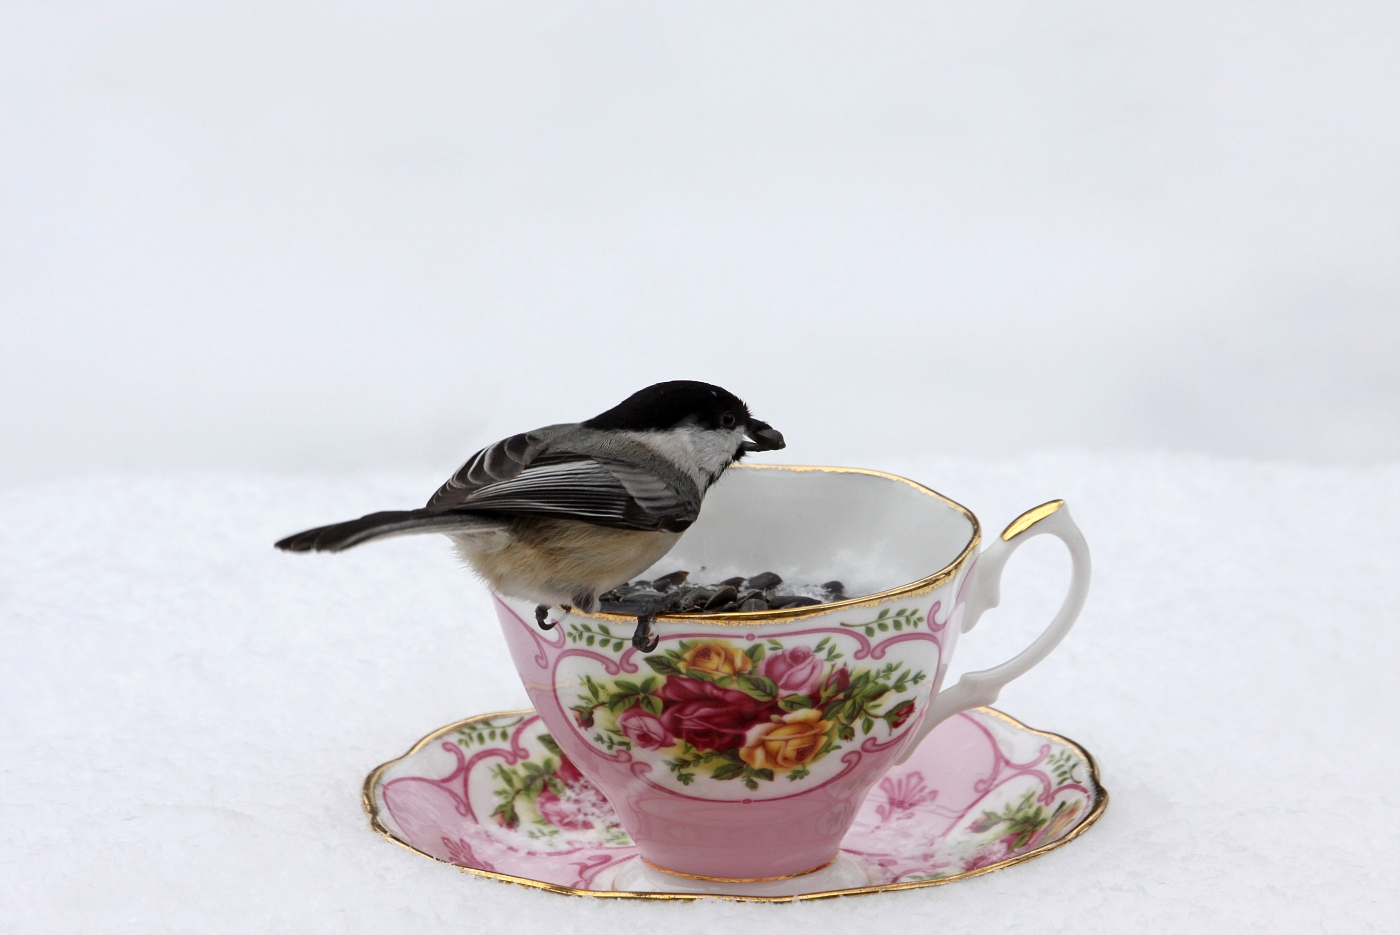 Teacup at the Feeder #5